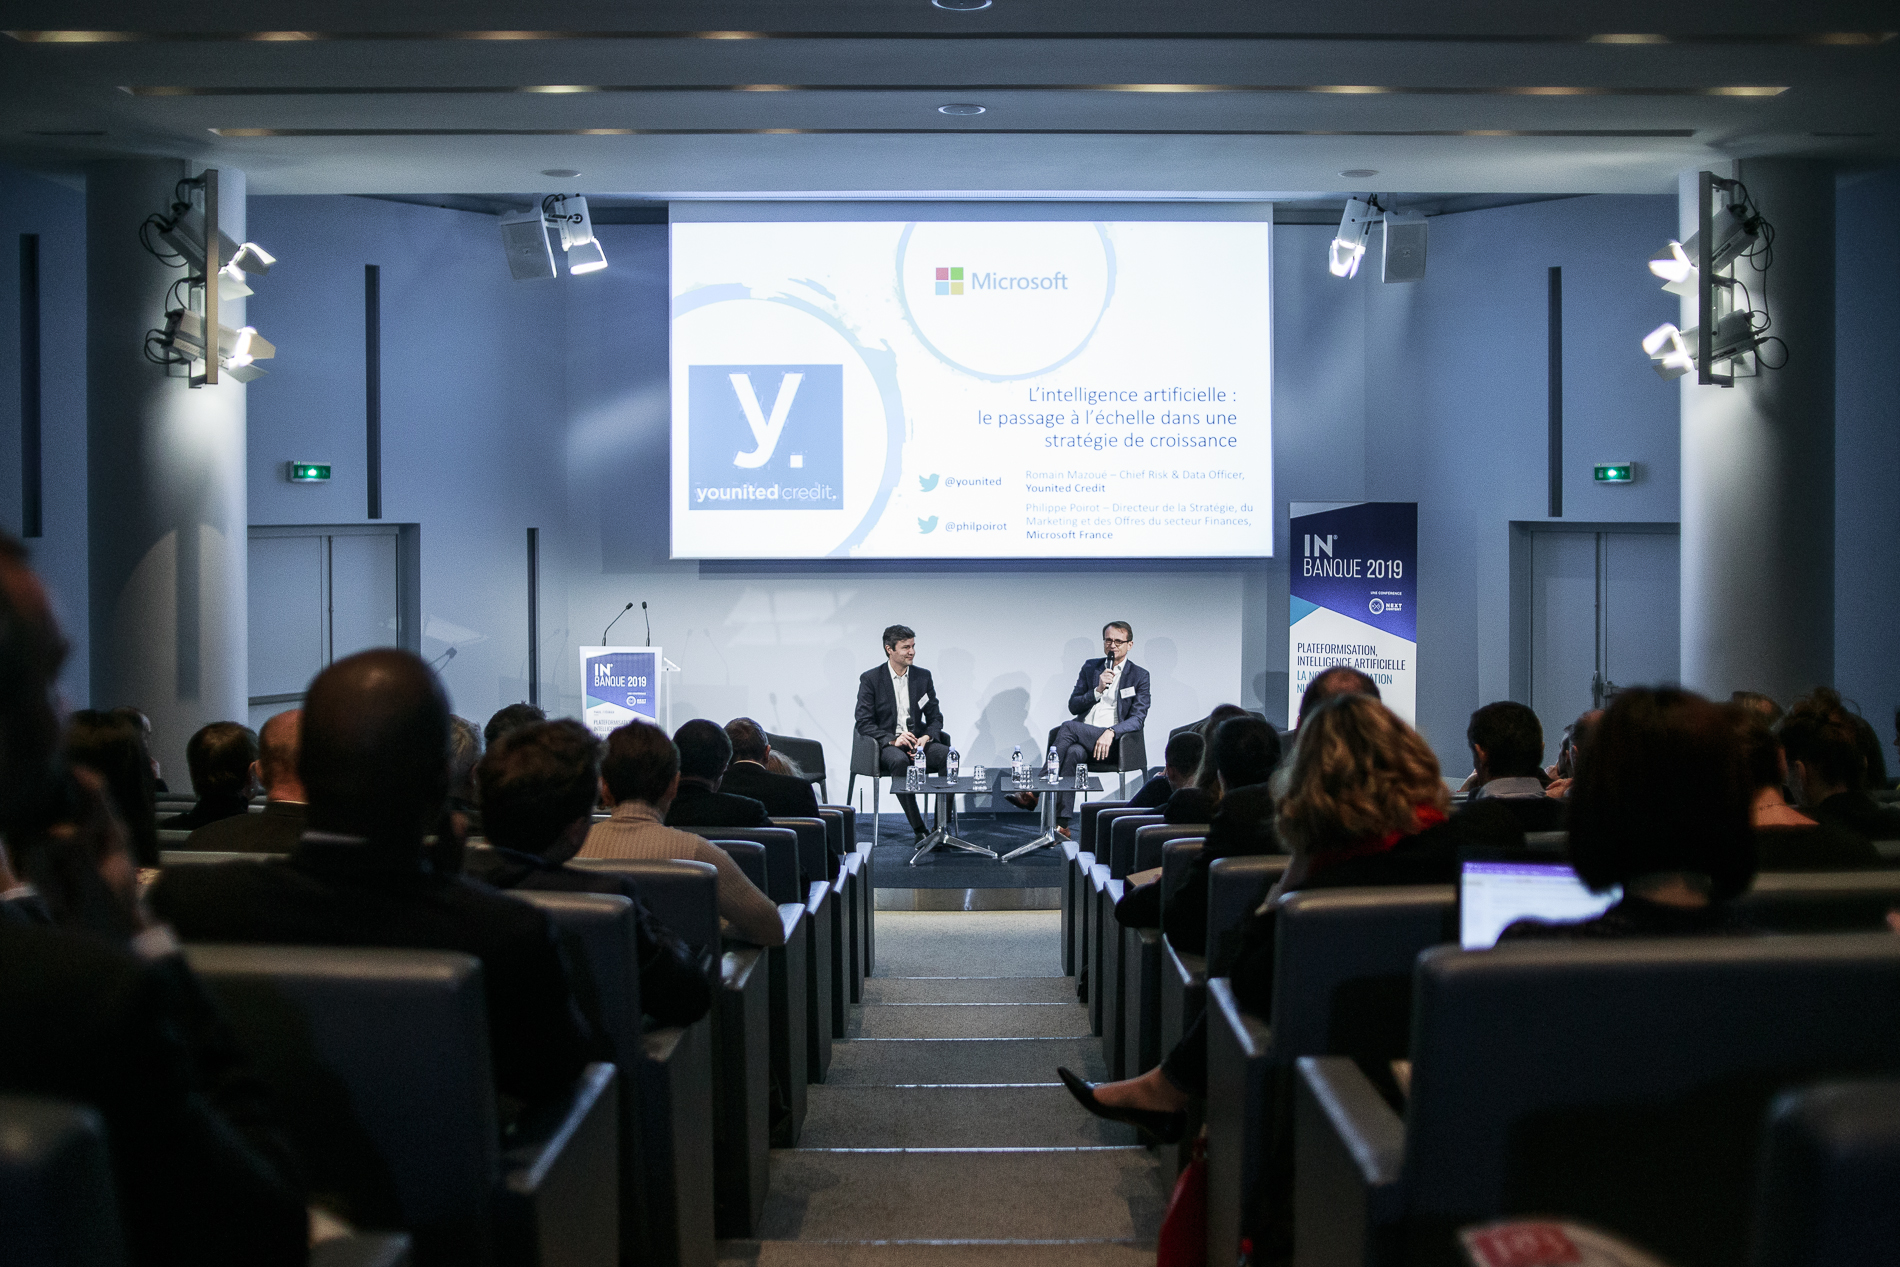 Philippe Poirot (Microsoft) et Romain Mazoué (Younited Credit) - IN BANQUE 2019 - Crédit photo : Guillermo Gomez